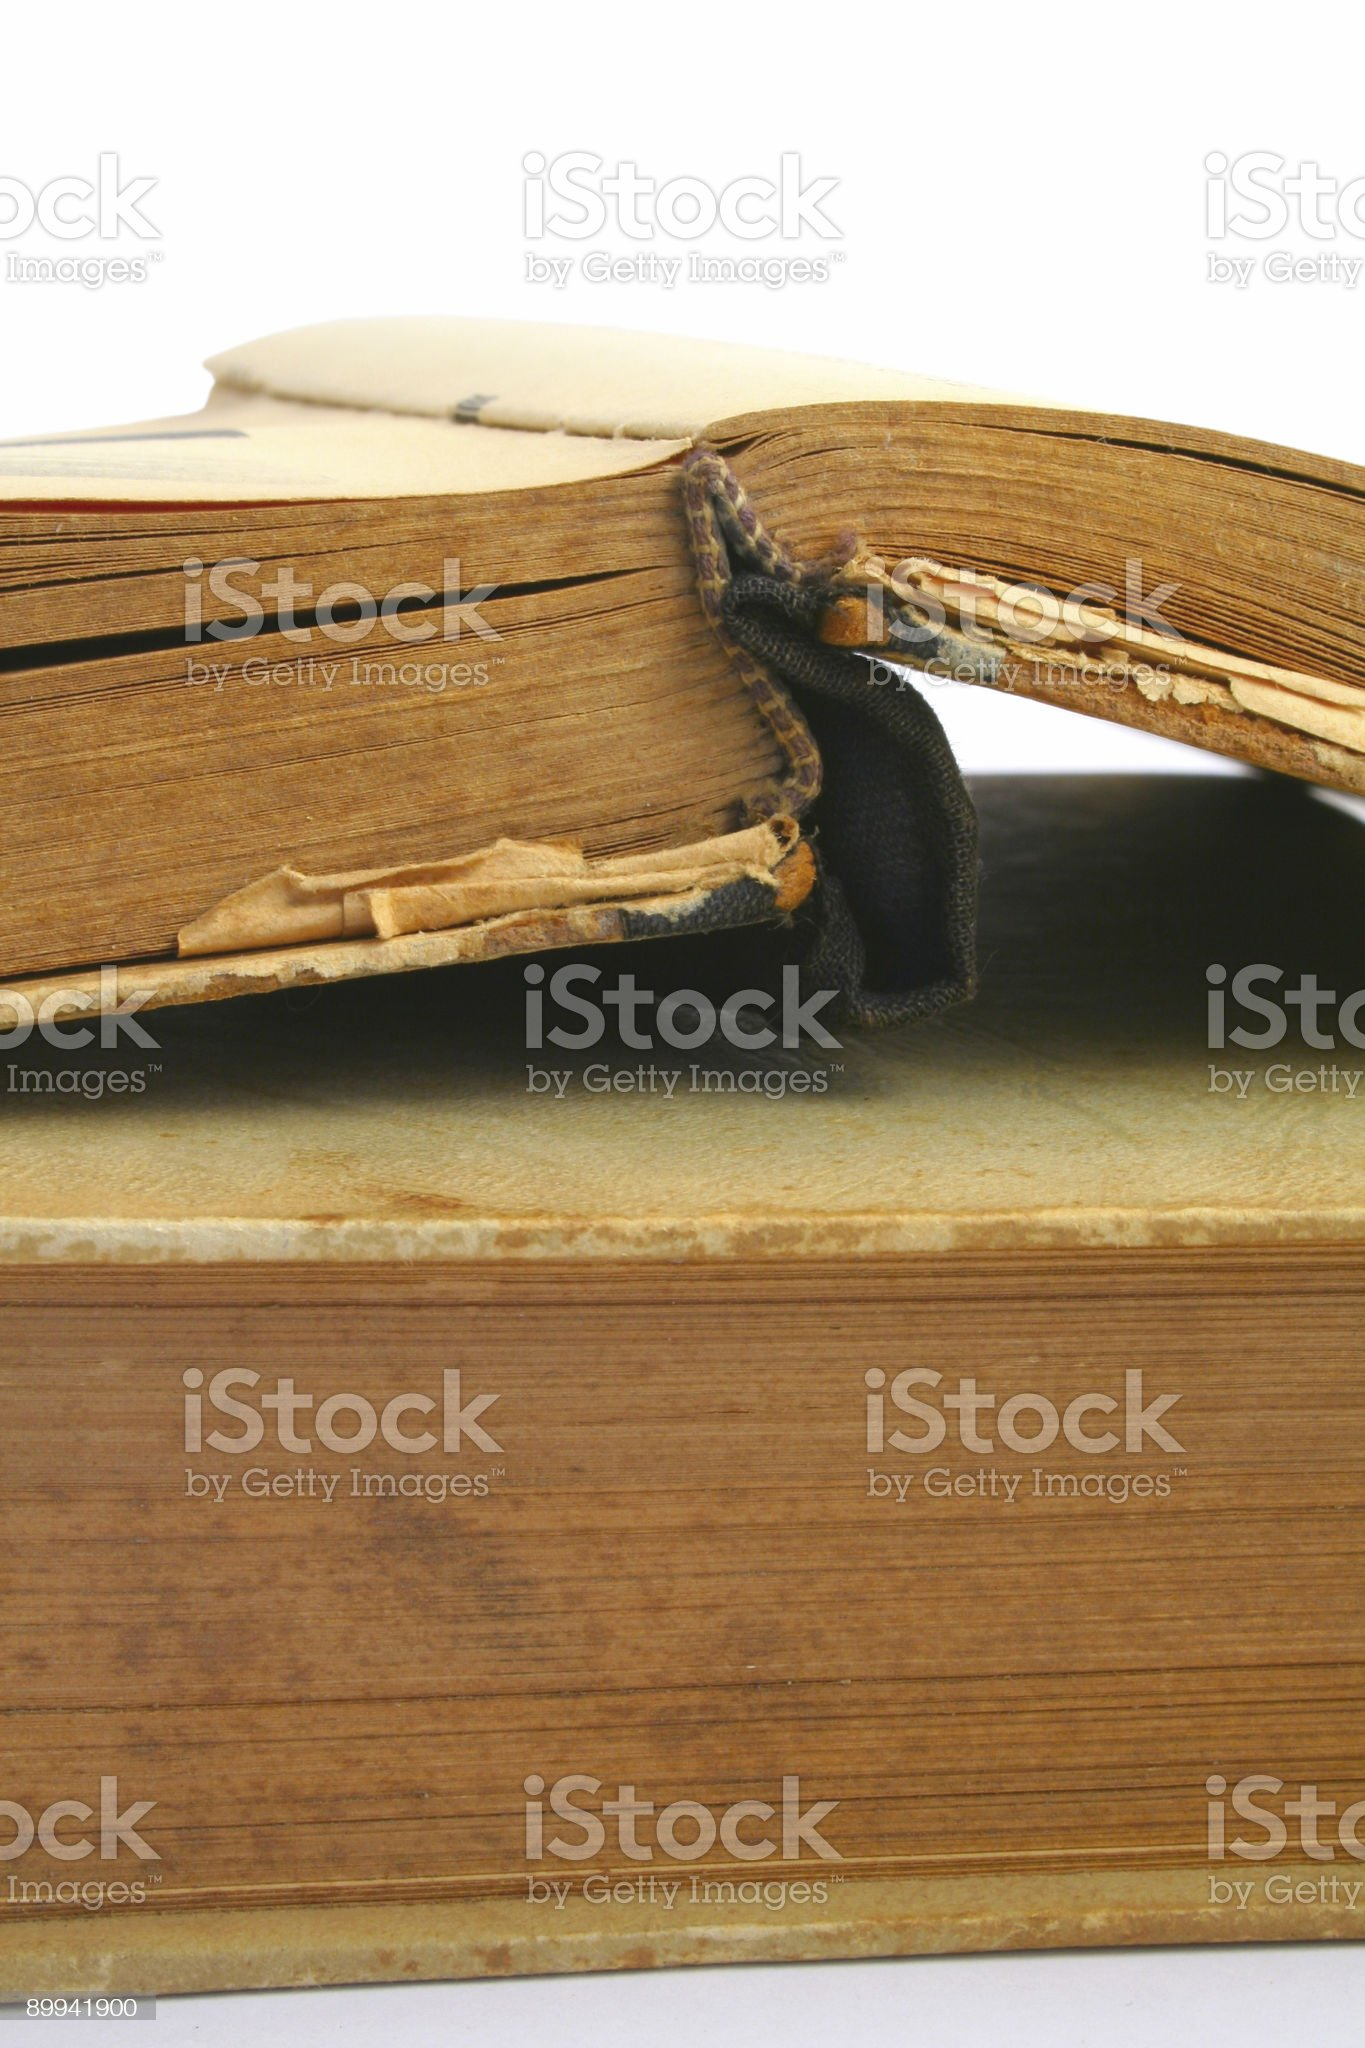 opened vintage book - vivid colors royalty-free stock photo